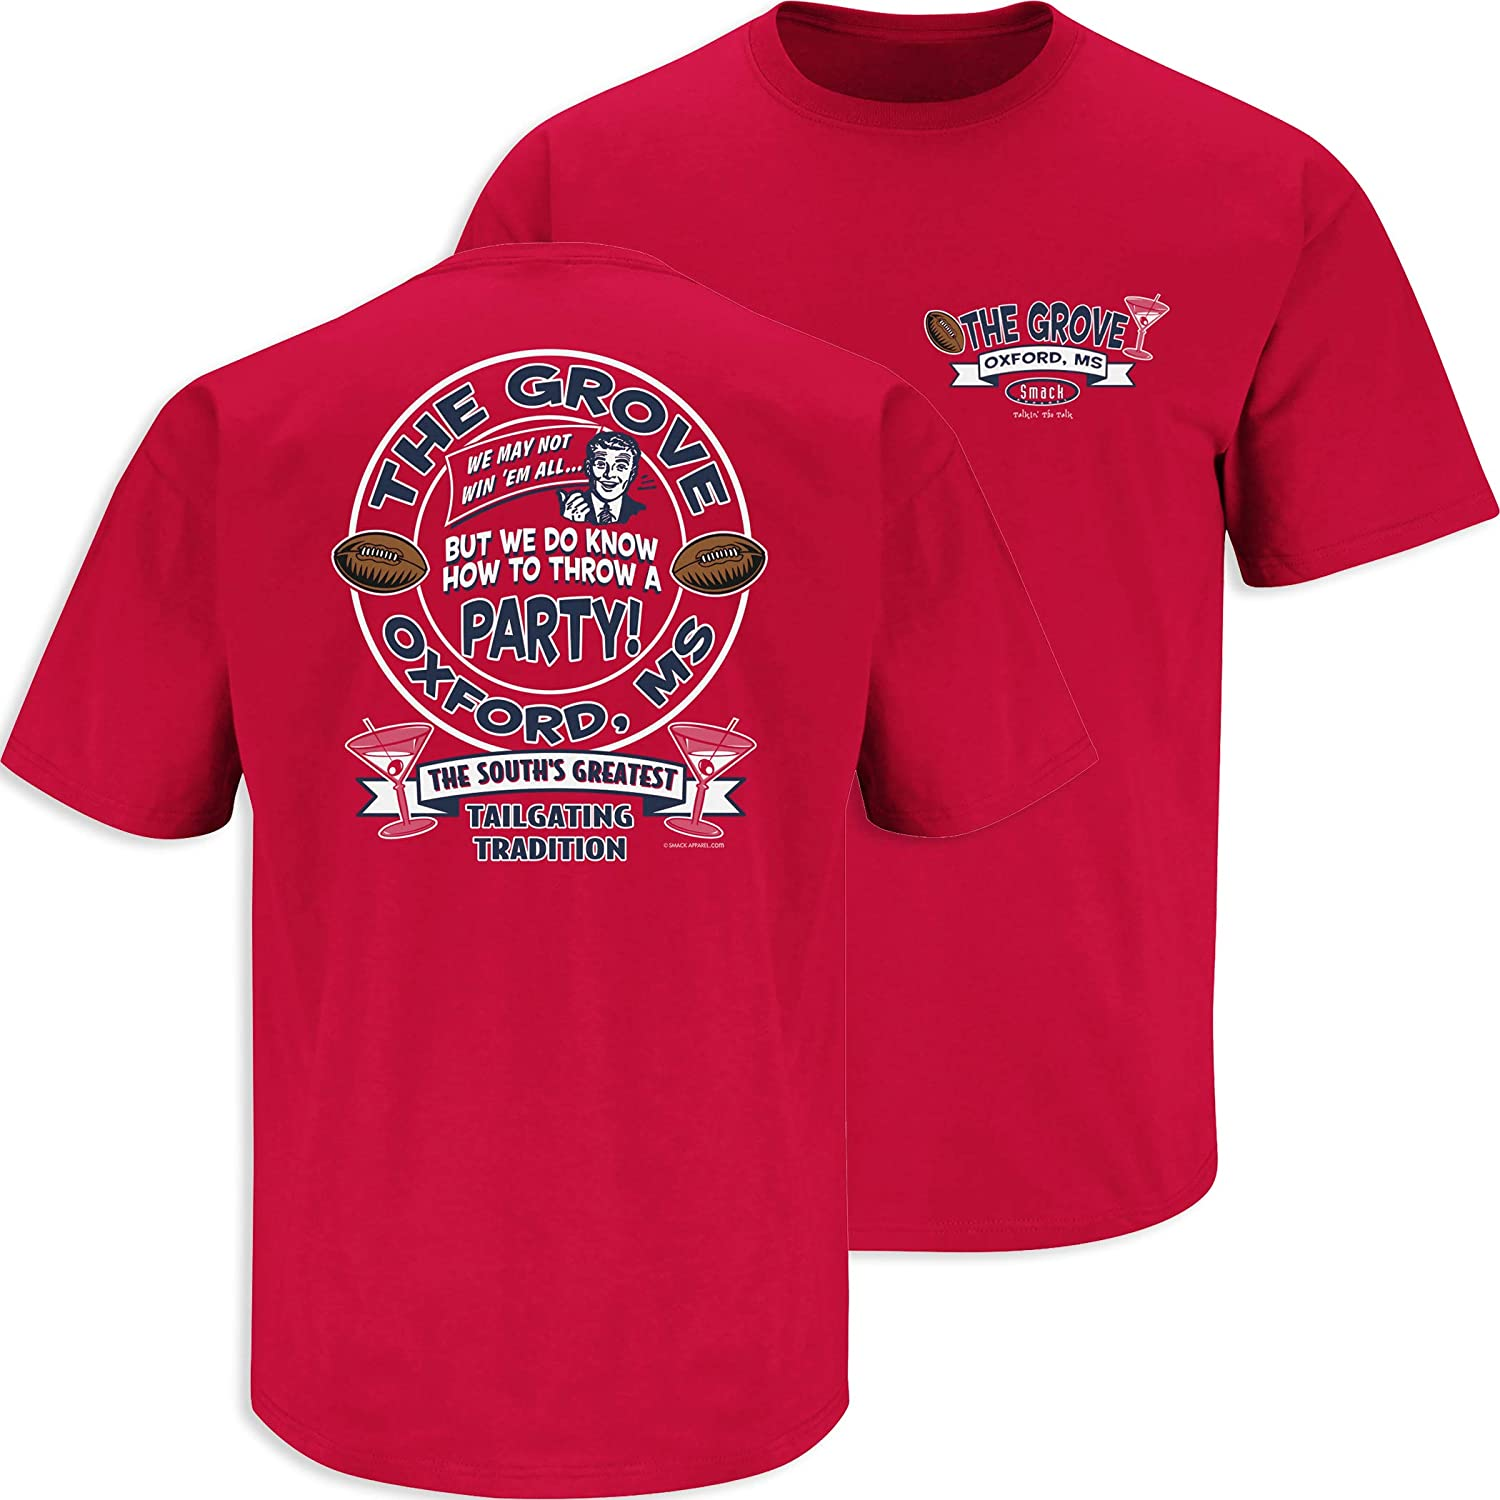 The Grove The Souths Greatest Tailgating Tradition T- Shirt Sm-5X Smack Apparel Ole Miss Football Fans